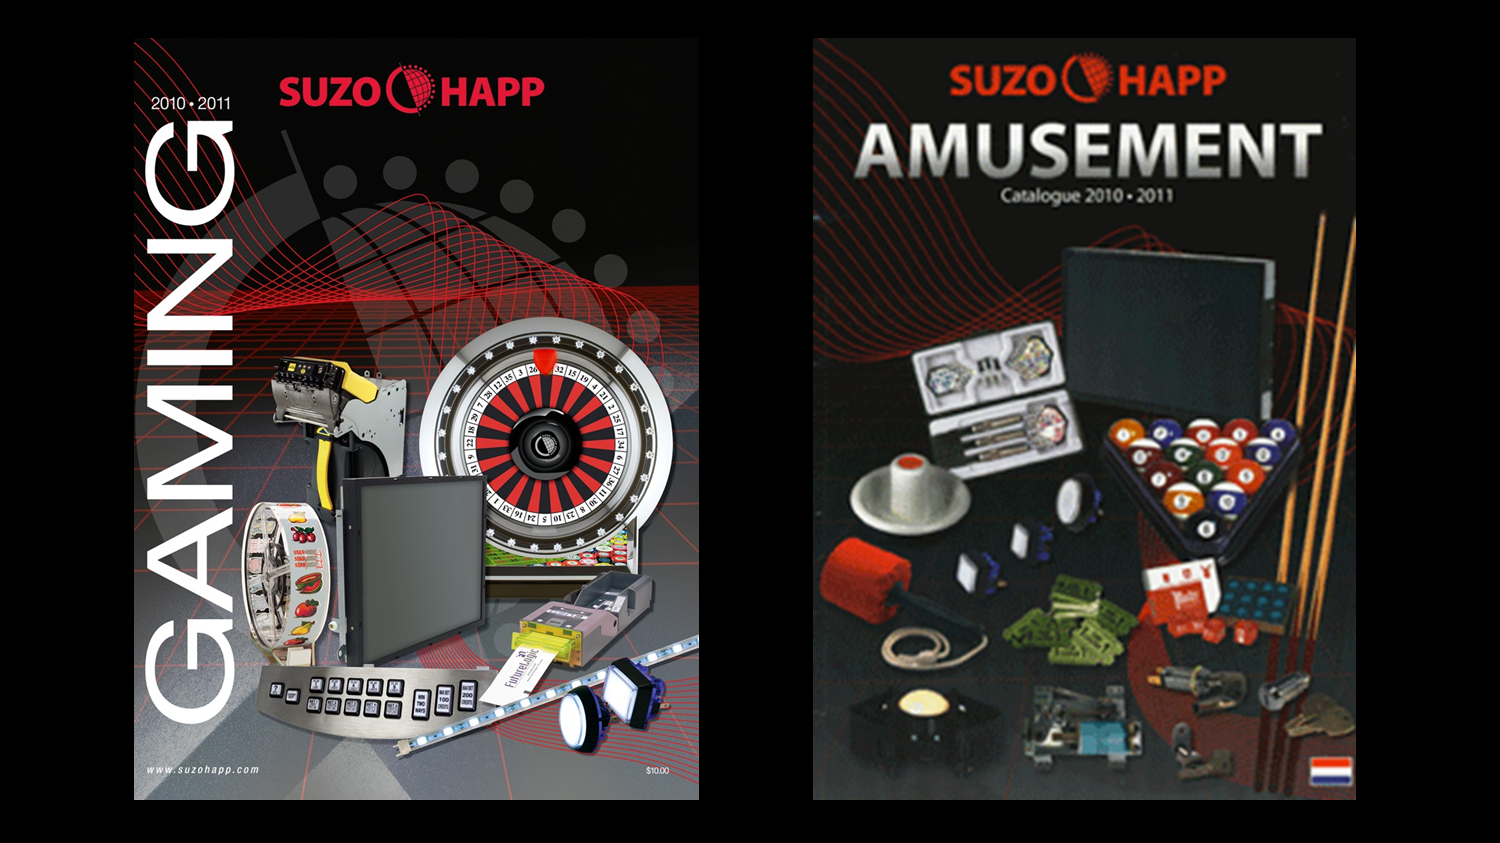 ACON Investments Acquires Suzo-Happ Group